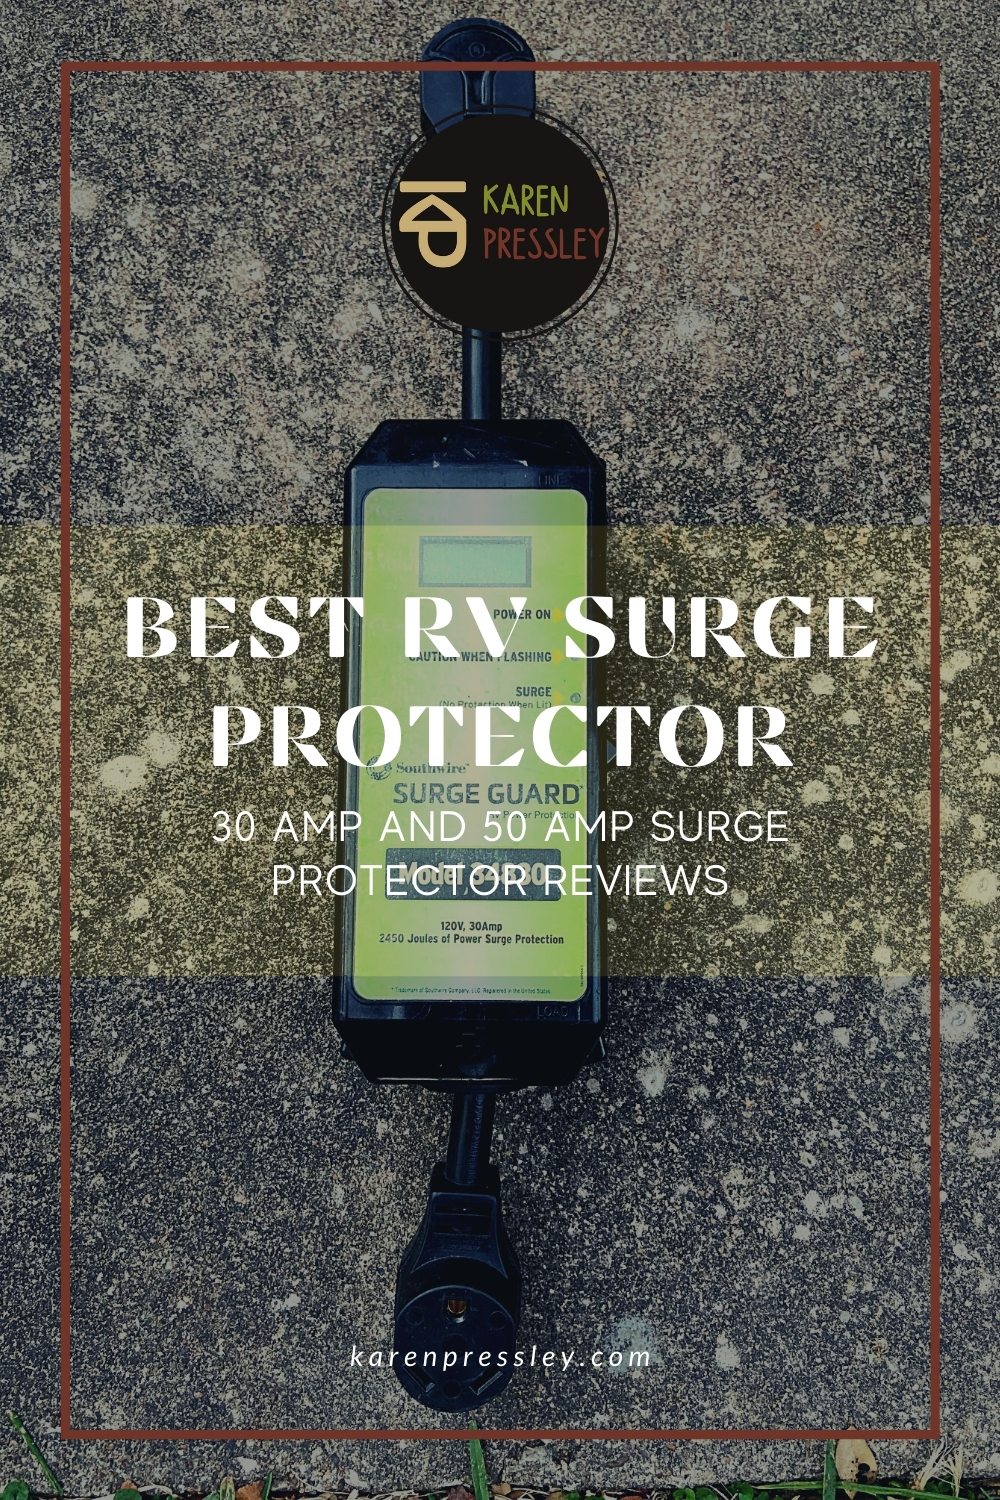 Best RV Surge Protector (30 amp and 50 amp Surge Protector Reviews)